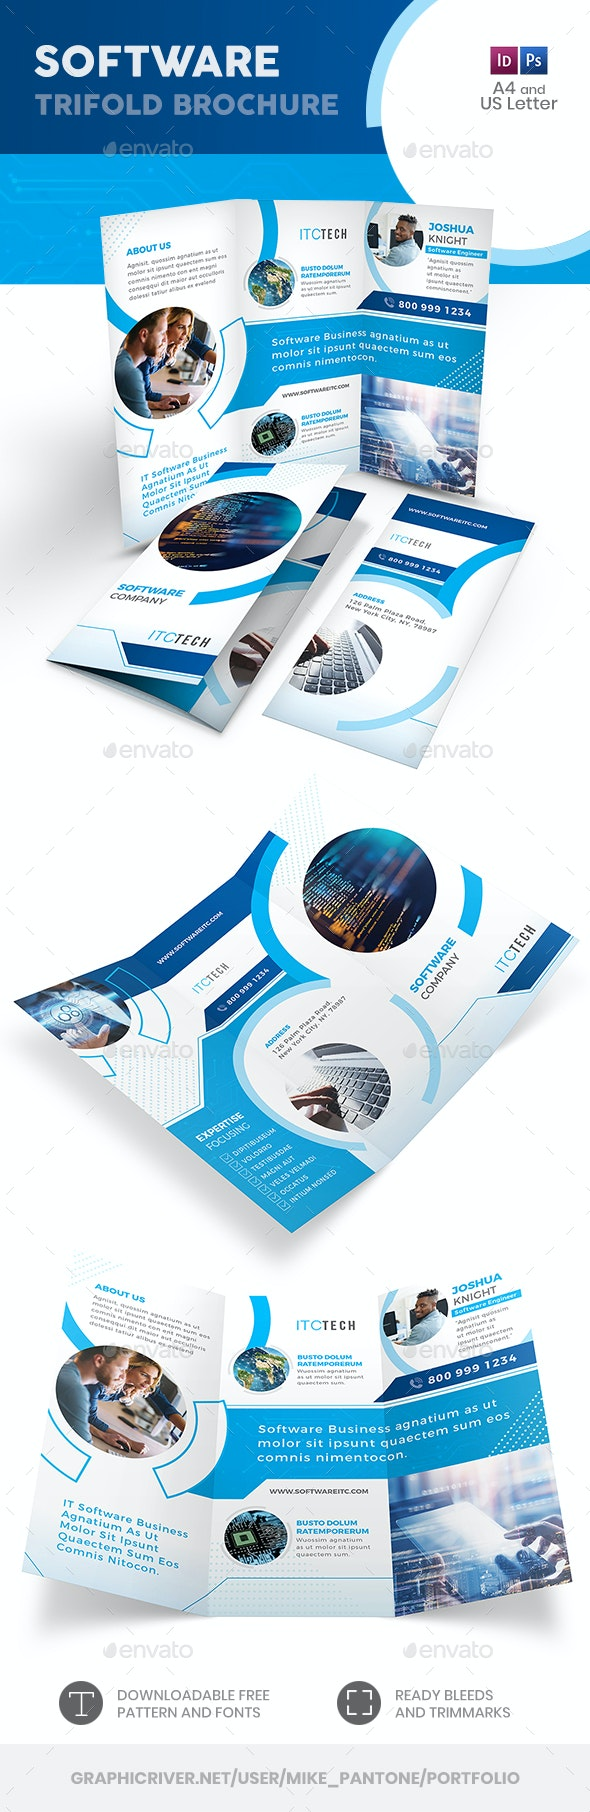 Software Trifold Brochure 10 - Informational Brochures